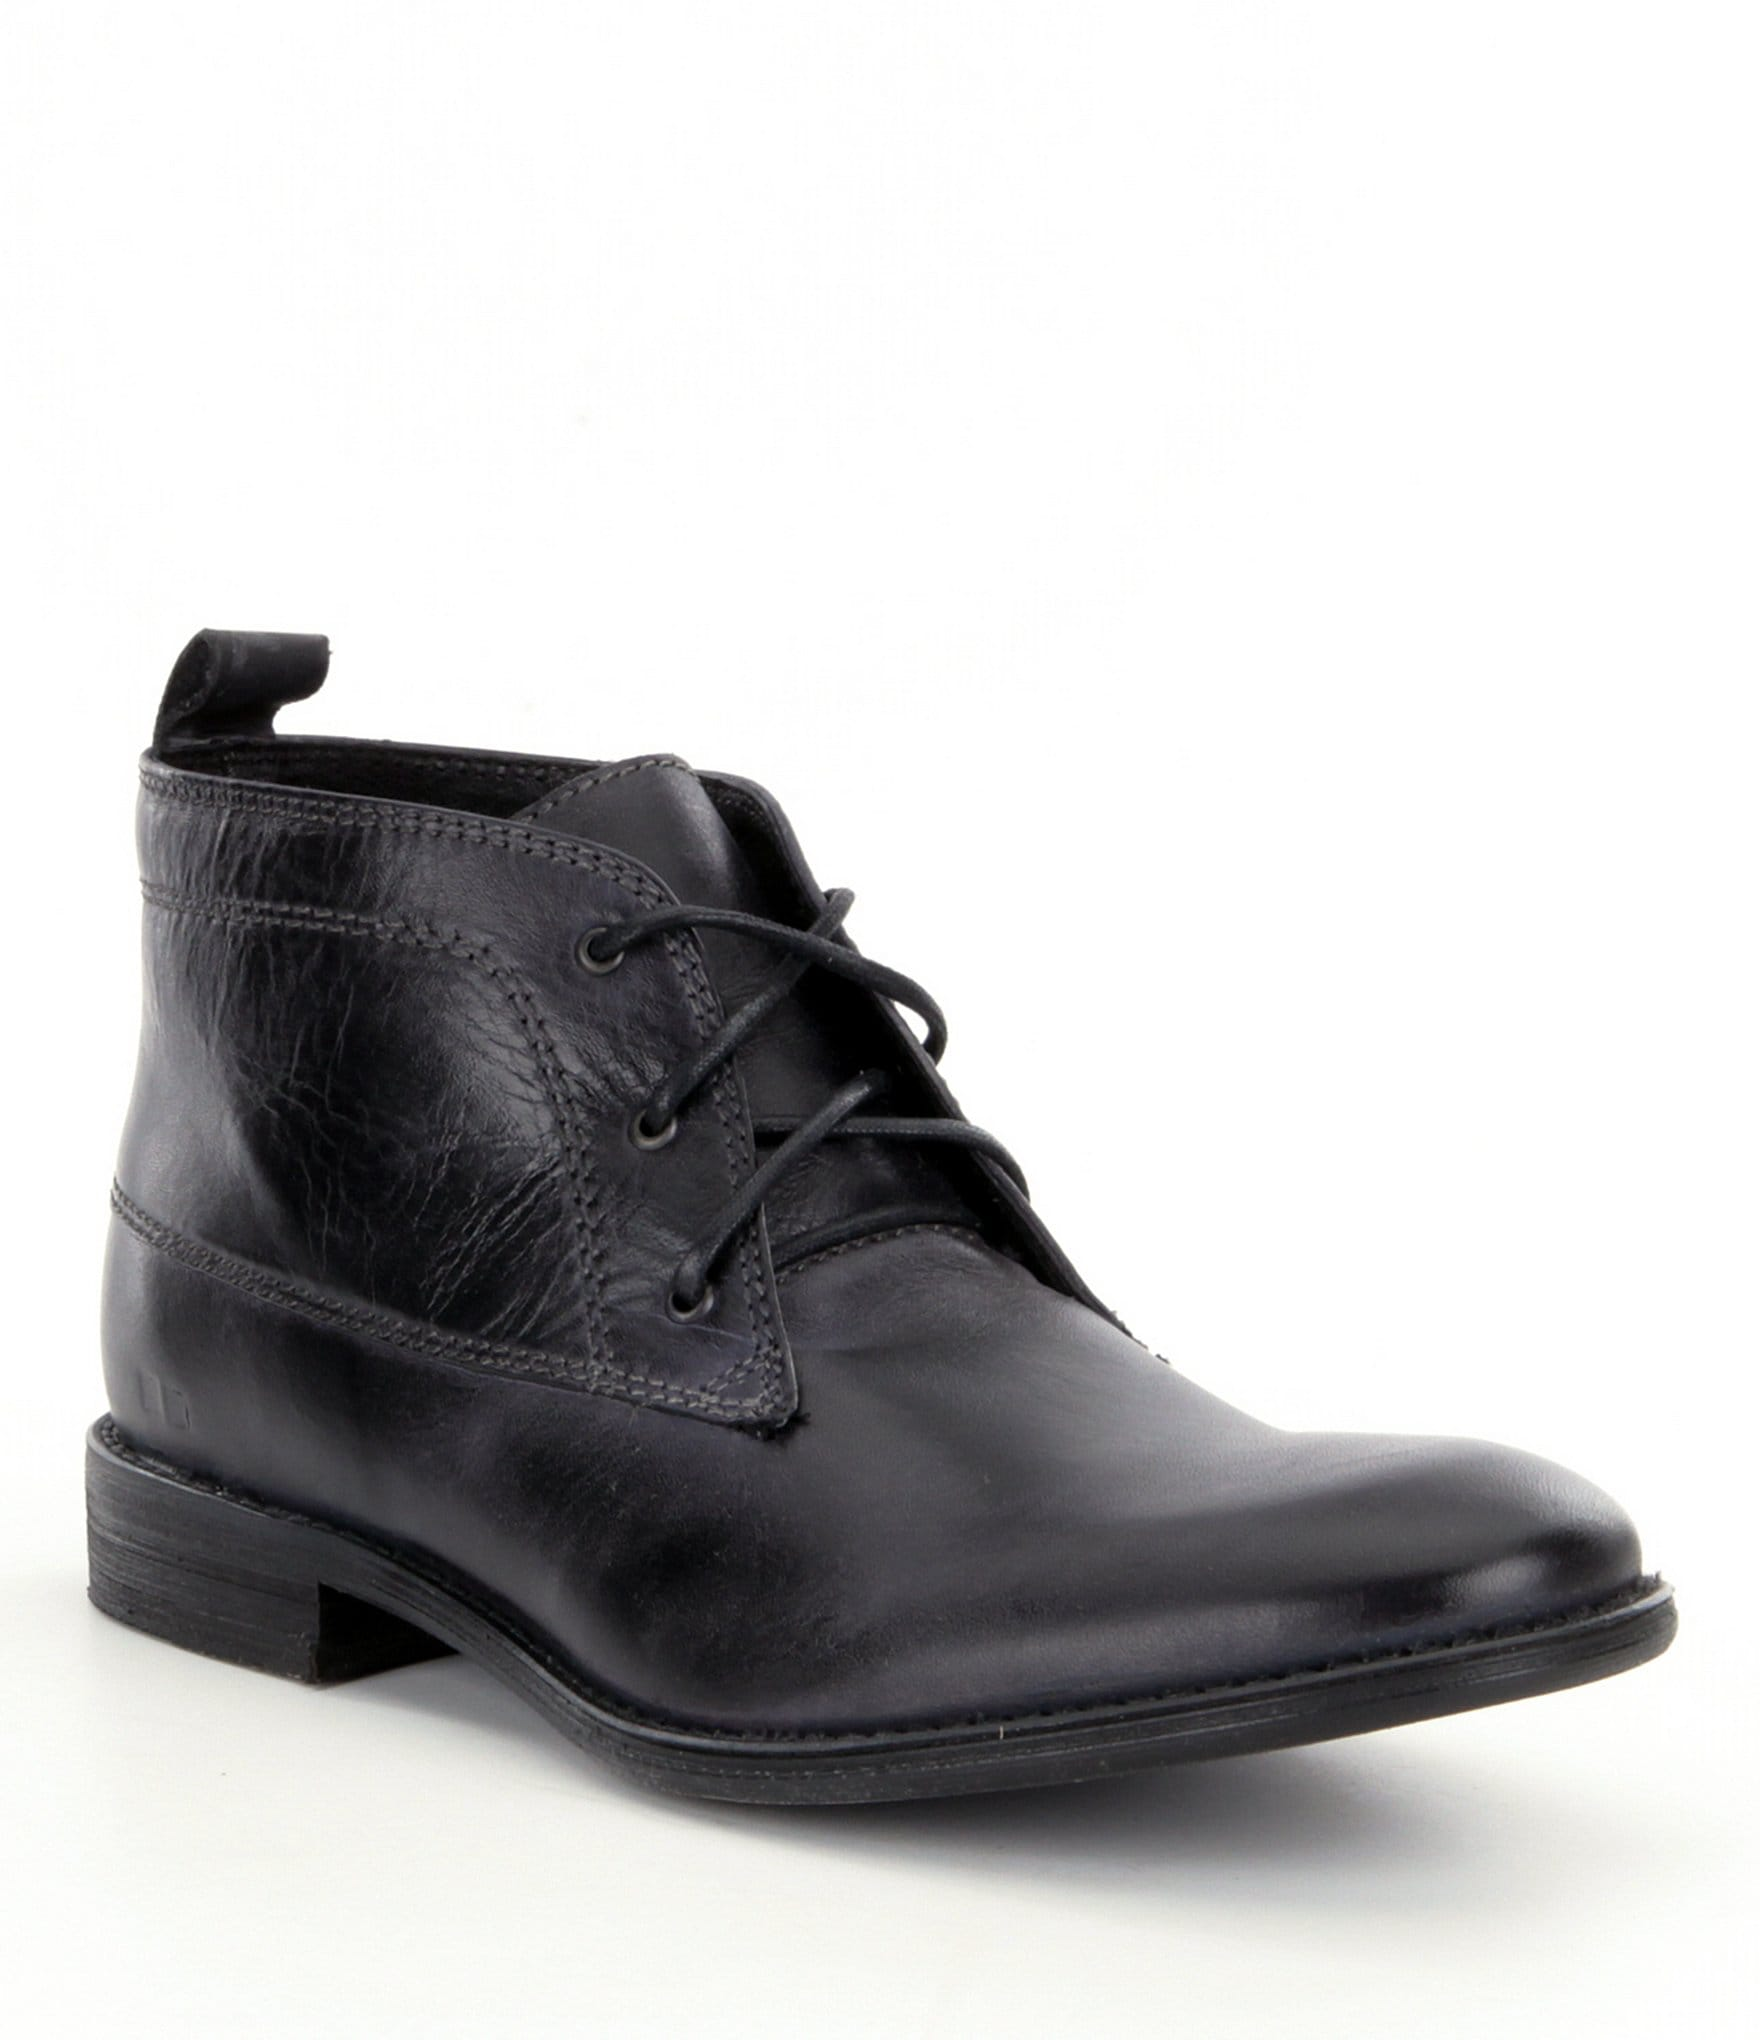 bed stu 180 s keith leather lace up boots dillards